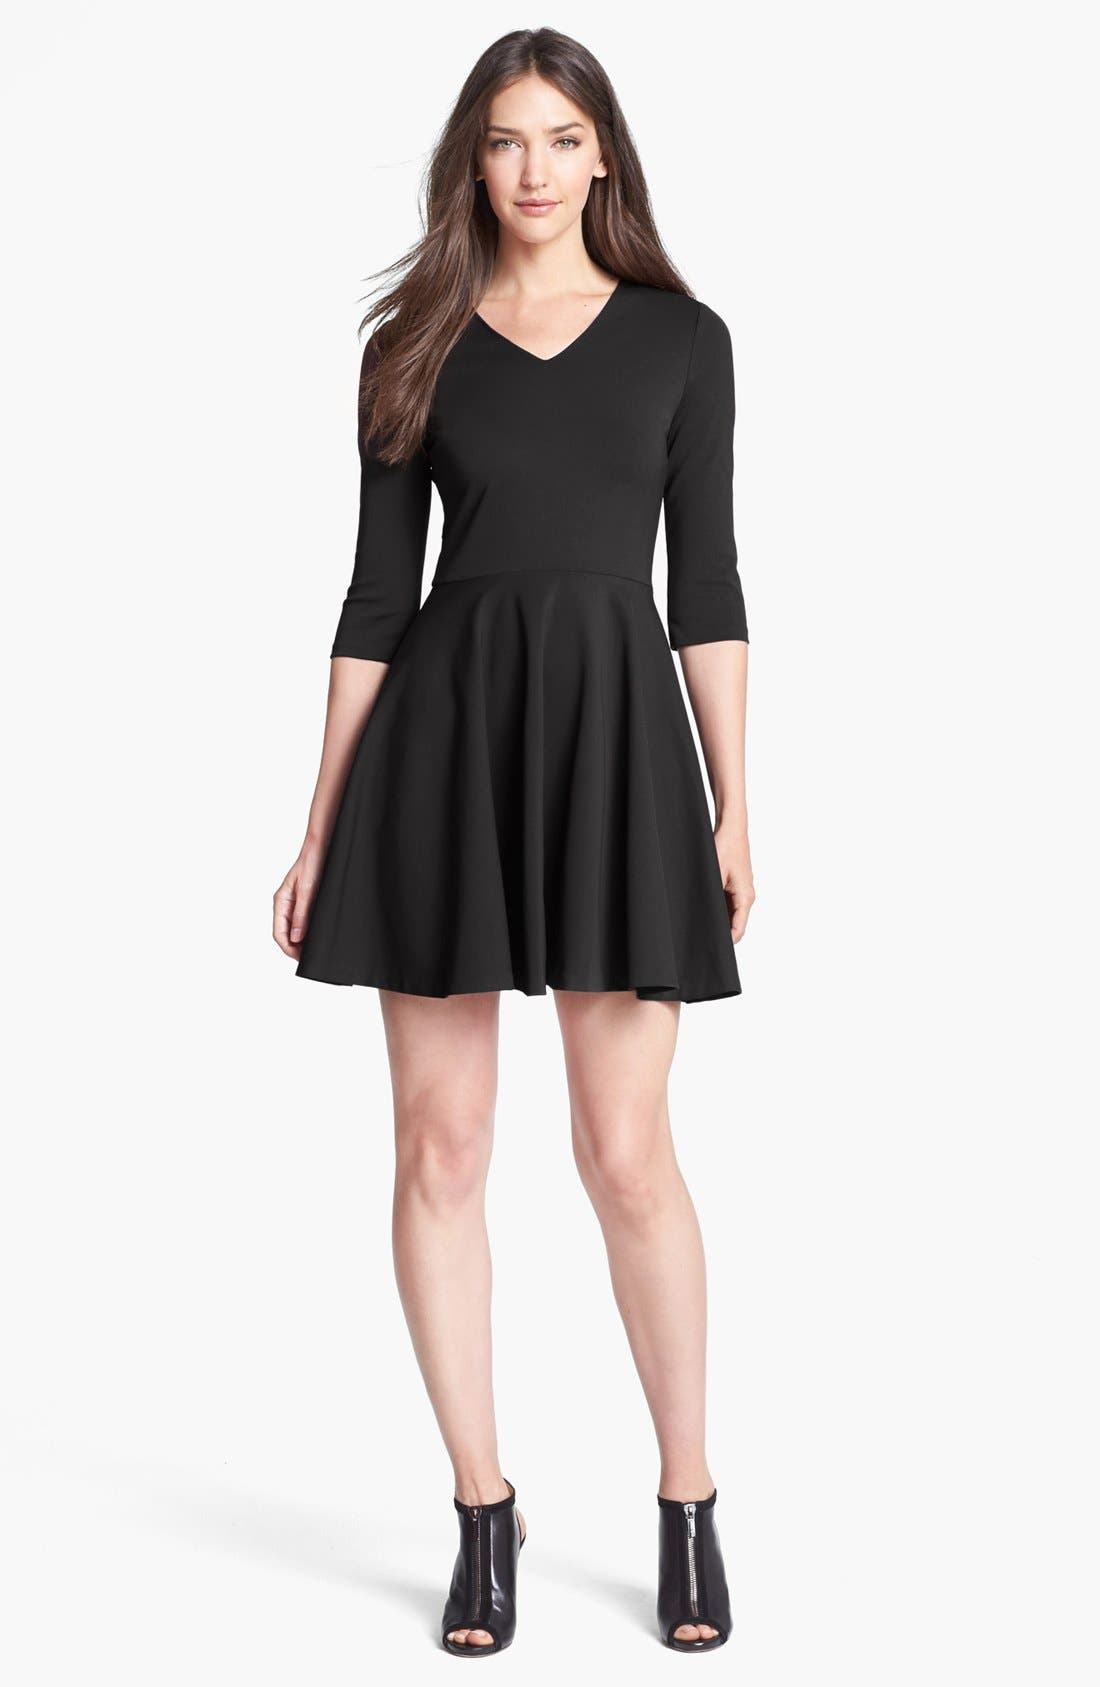 Main Image - Diane von Furstenberg 'Jeannie' Stretch Fit & Flare Dress